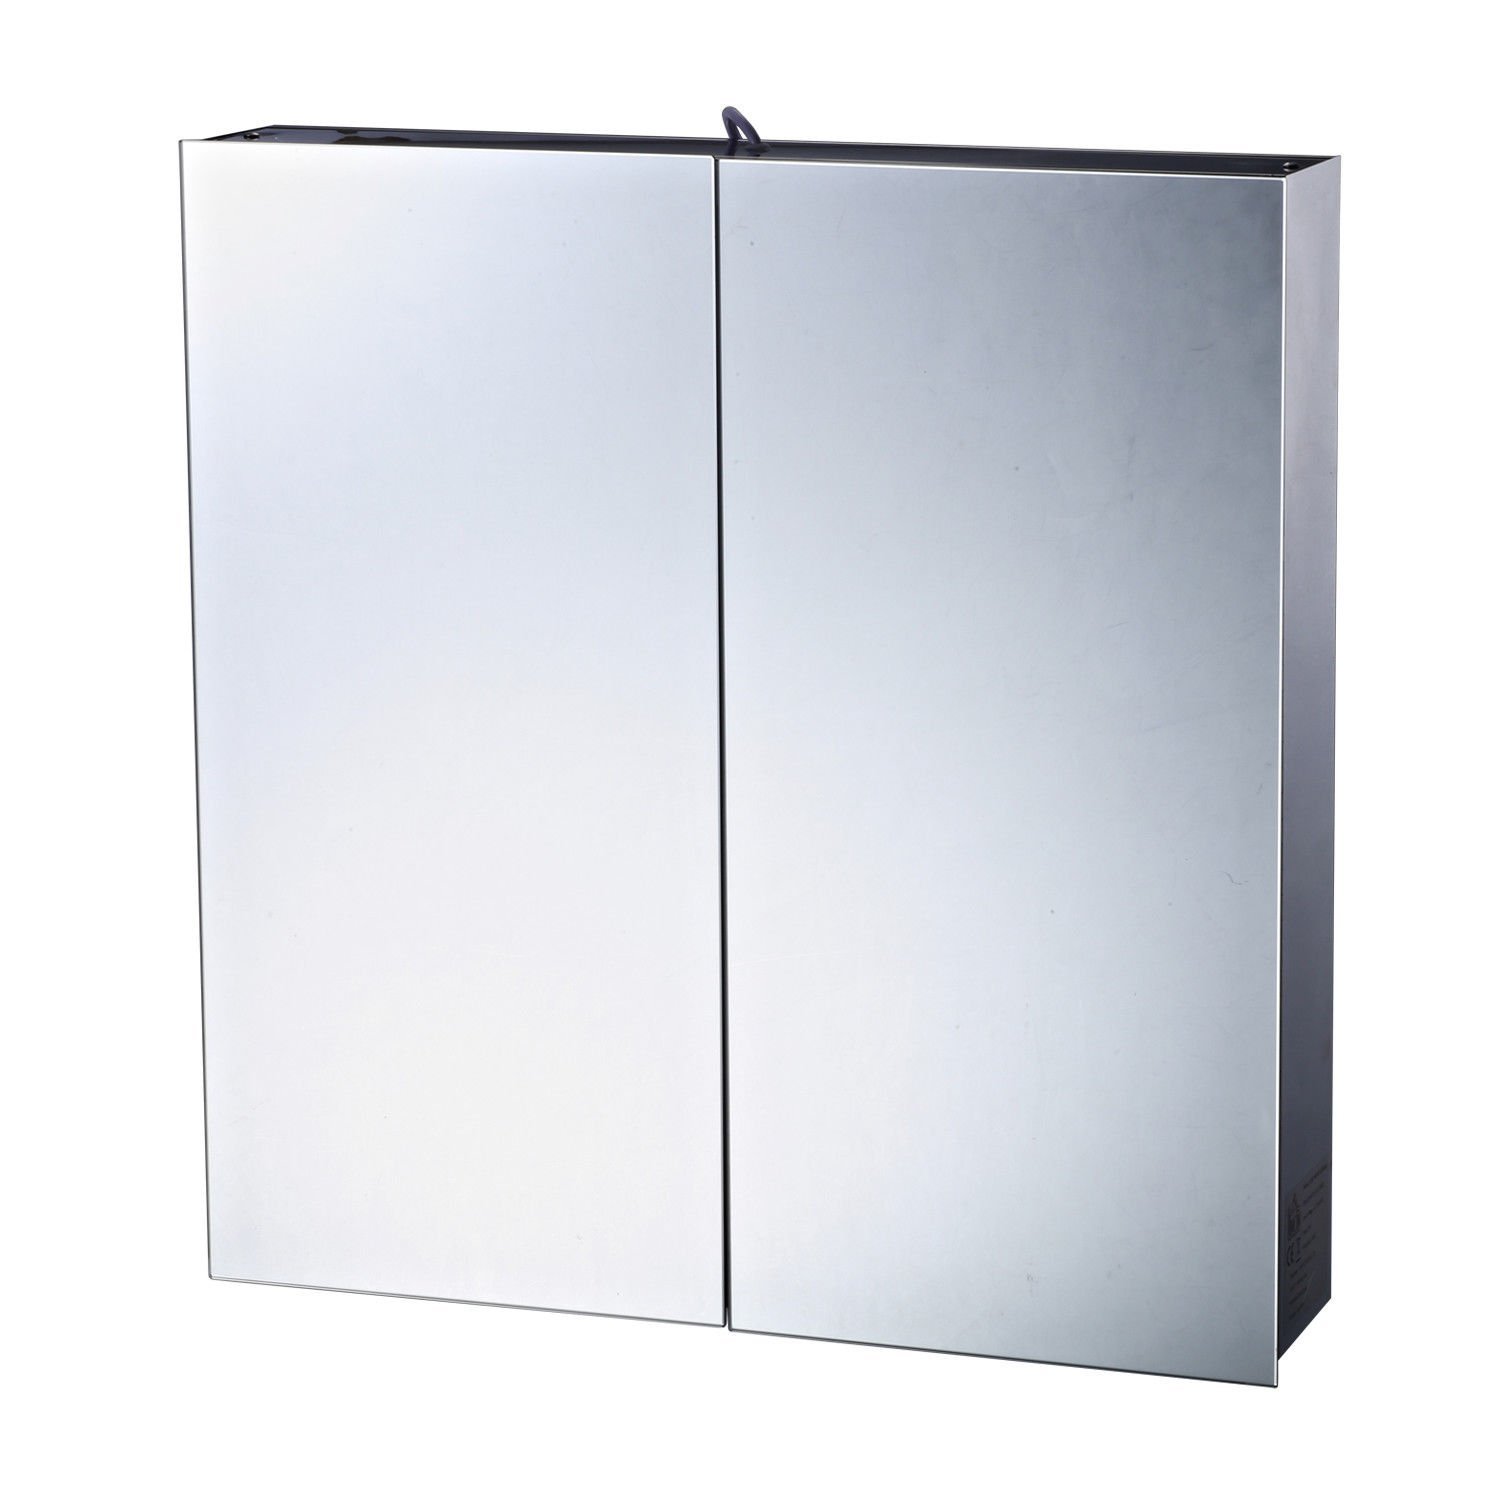 HOMCOM Stainless Steel Wall Mounted Bathroom Mirror Cabinet Storage Unit Double Door 3 Shelves with LED Light Sold By MHSTAR